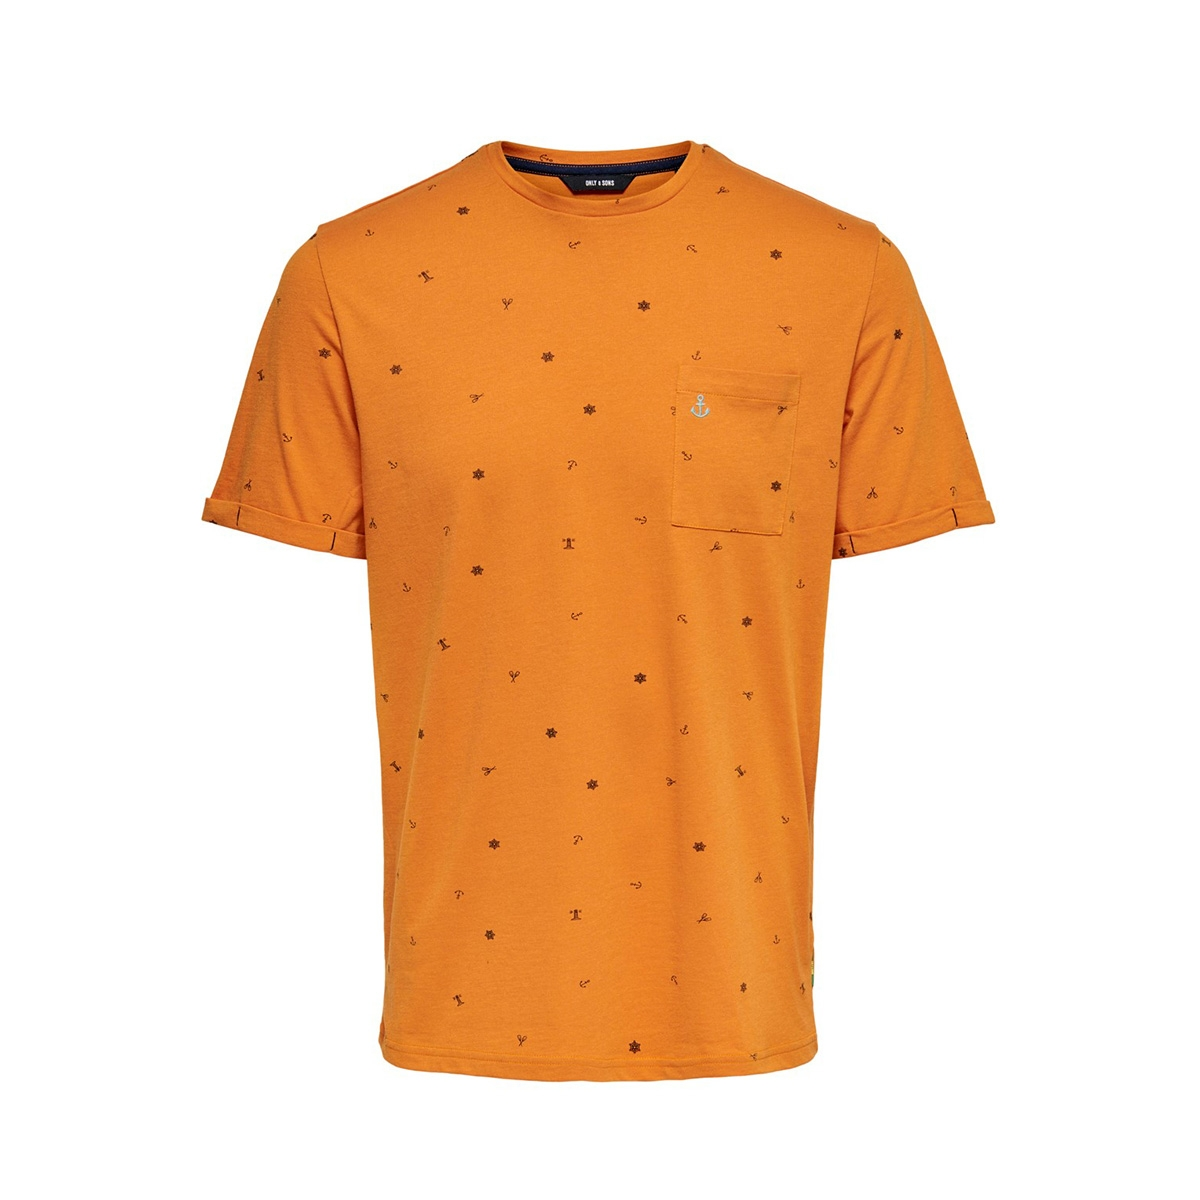 onsrussel reg ss aop tee 22015574 only & sons t-shirt marmalade